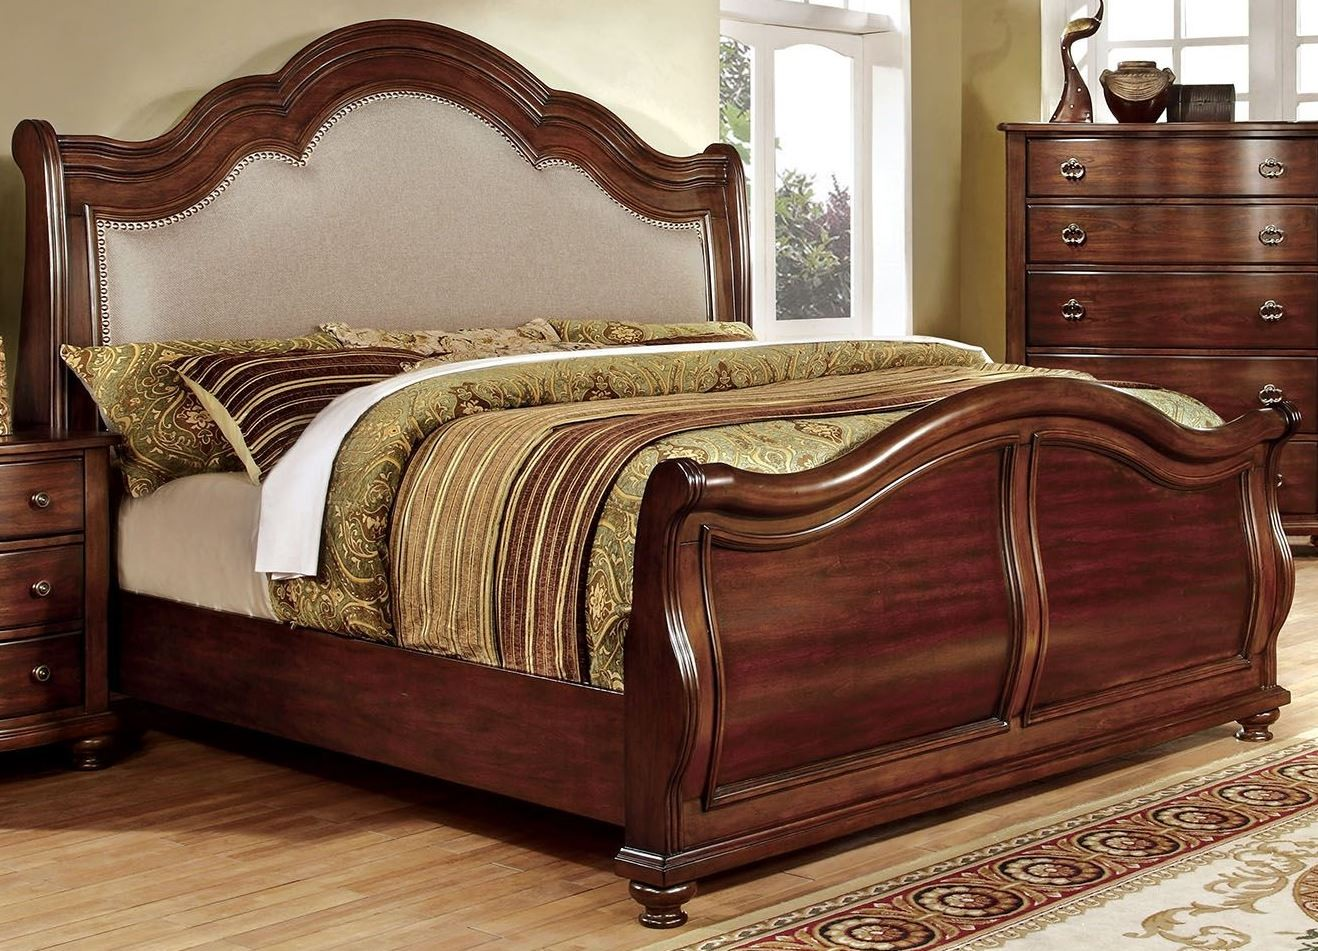 Bellavista Brown Cherry King Sleigh Bed From Furniture Of